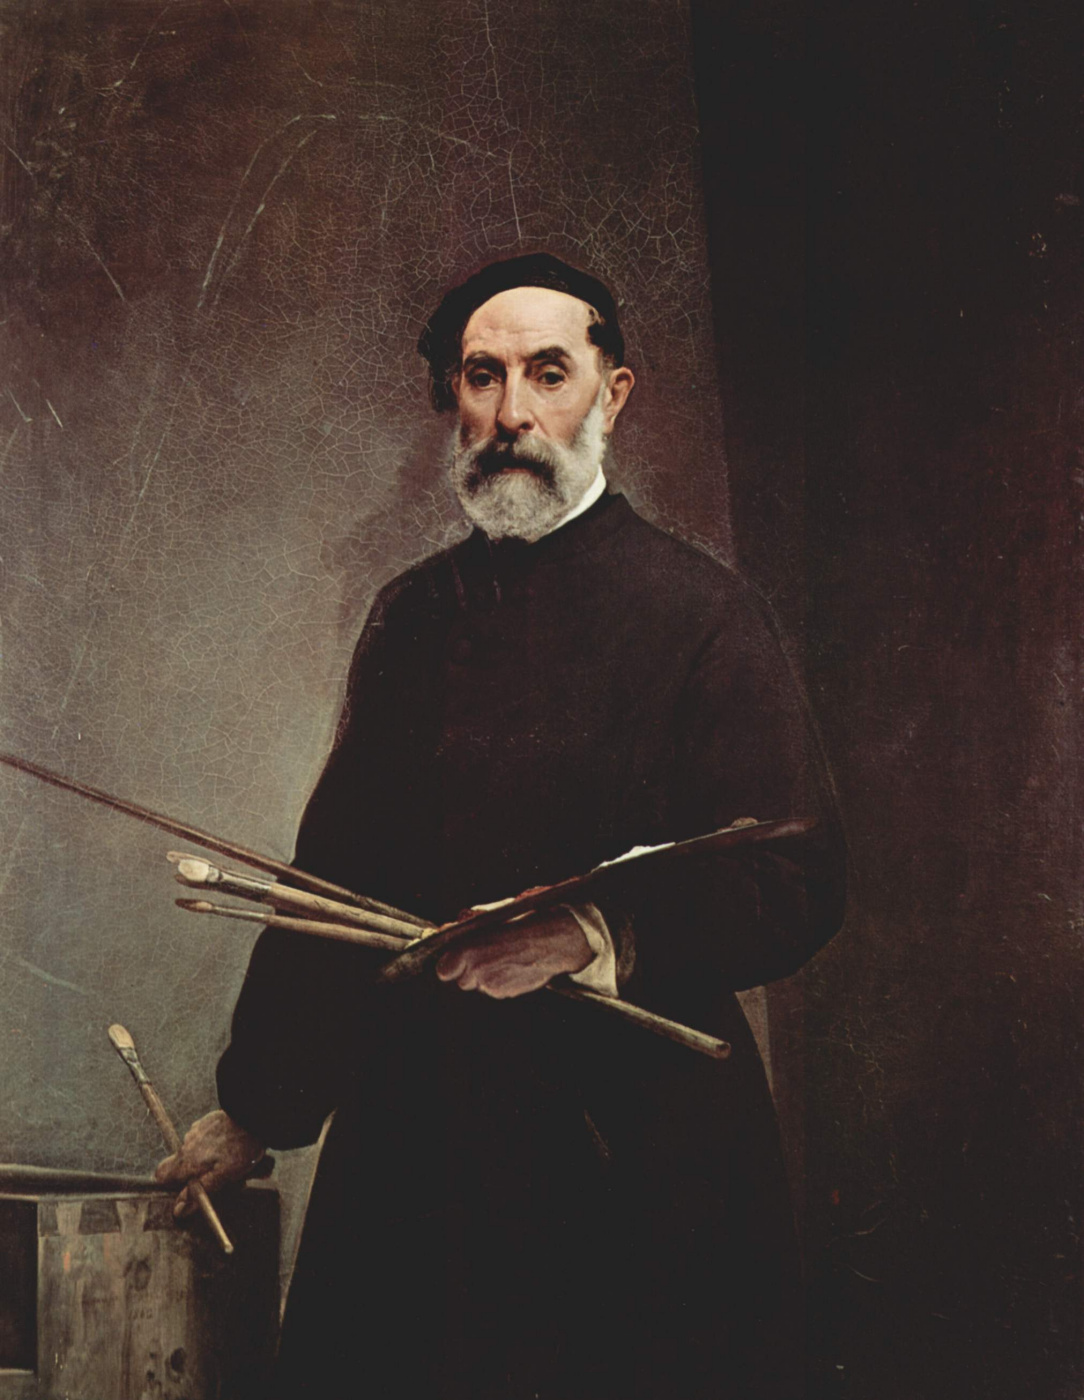 Francesco Ayets. Self-portrait at 69 years old